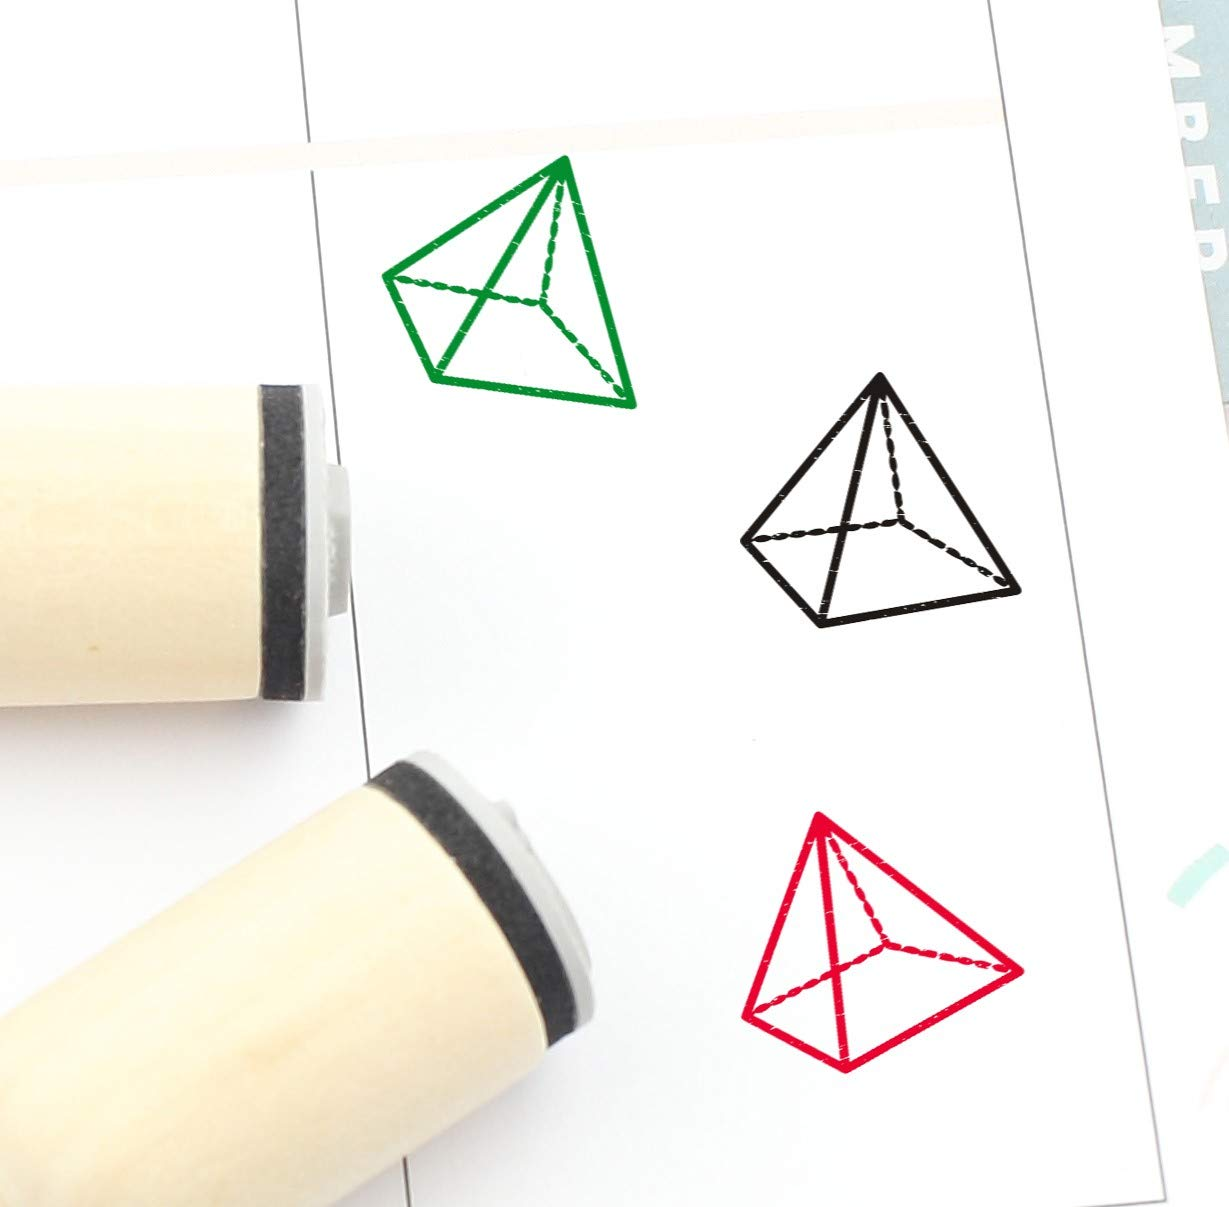 Square Pyramid Rubber Stamp Factory outlet Geometry Cute Cheap